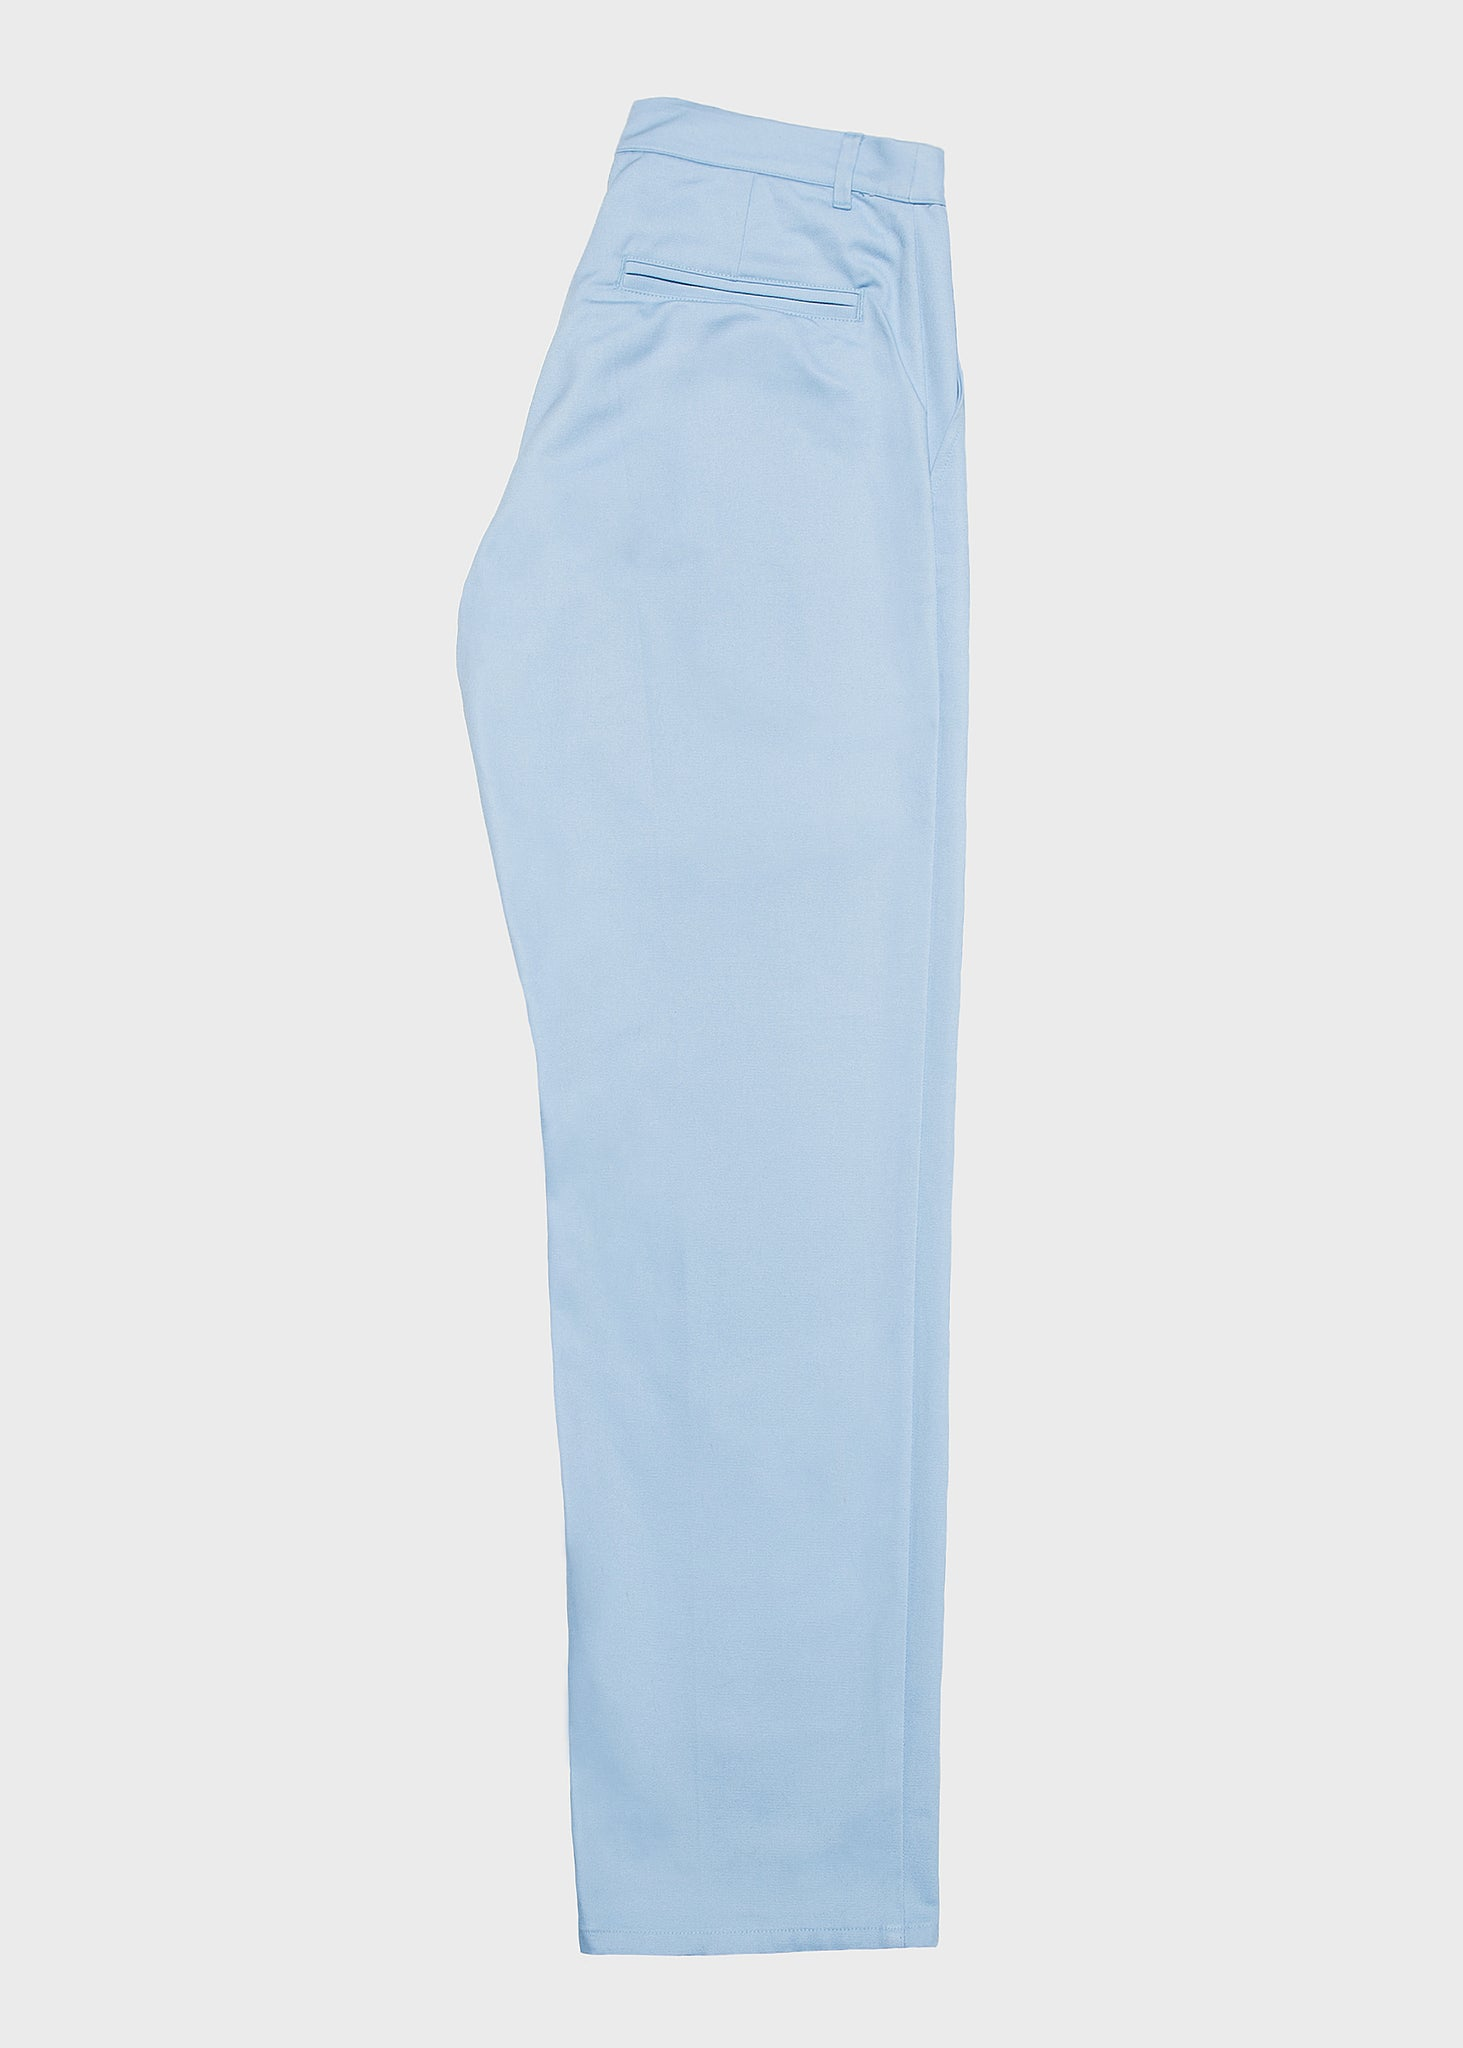 Workwear Pant Baby Blue